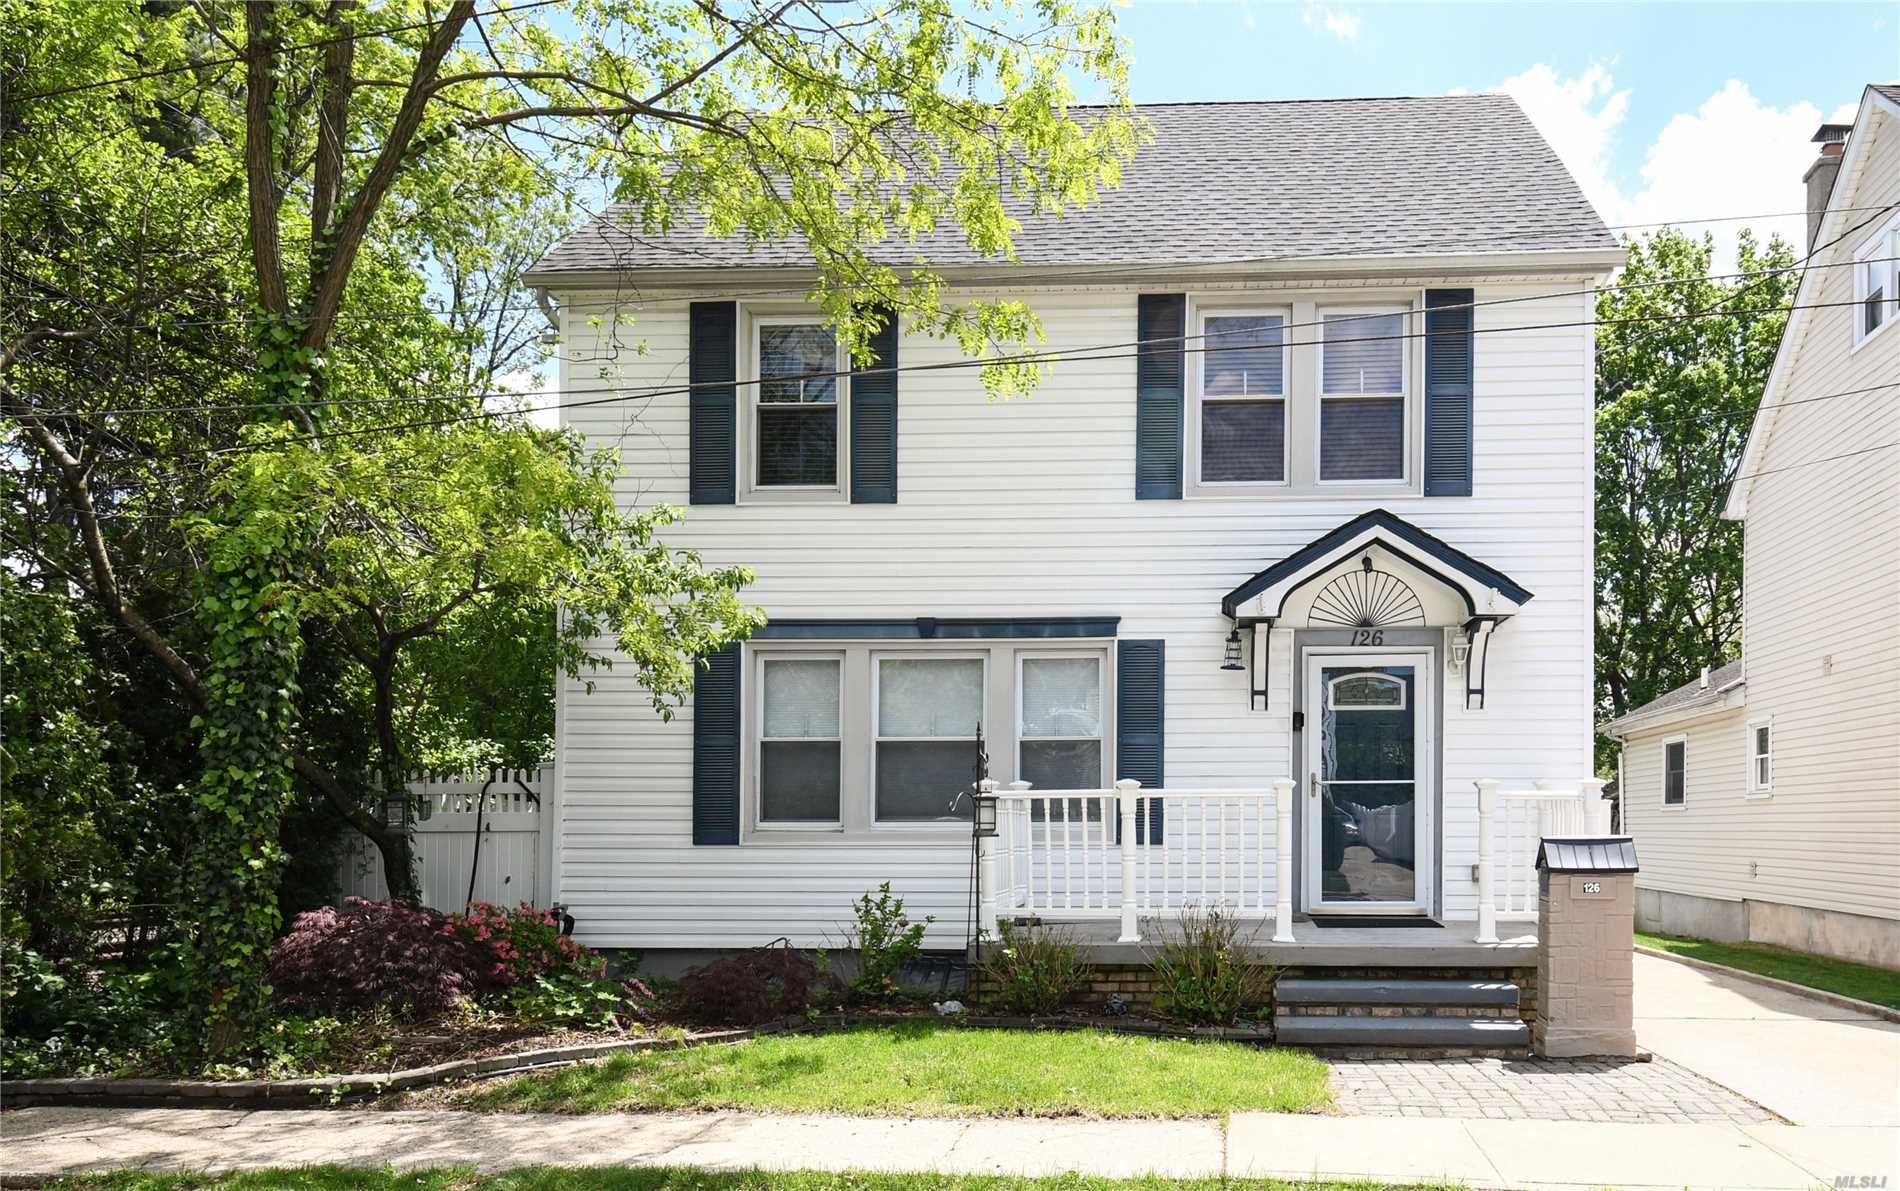 Lovely Chatlos Colonial located in the heart of Williston Park with many updates! Close to LIRR, shopping, parks, restaurants and village pool. This won't last....priced to sell.